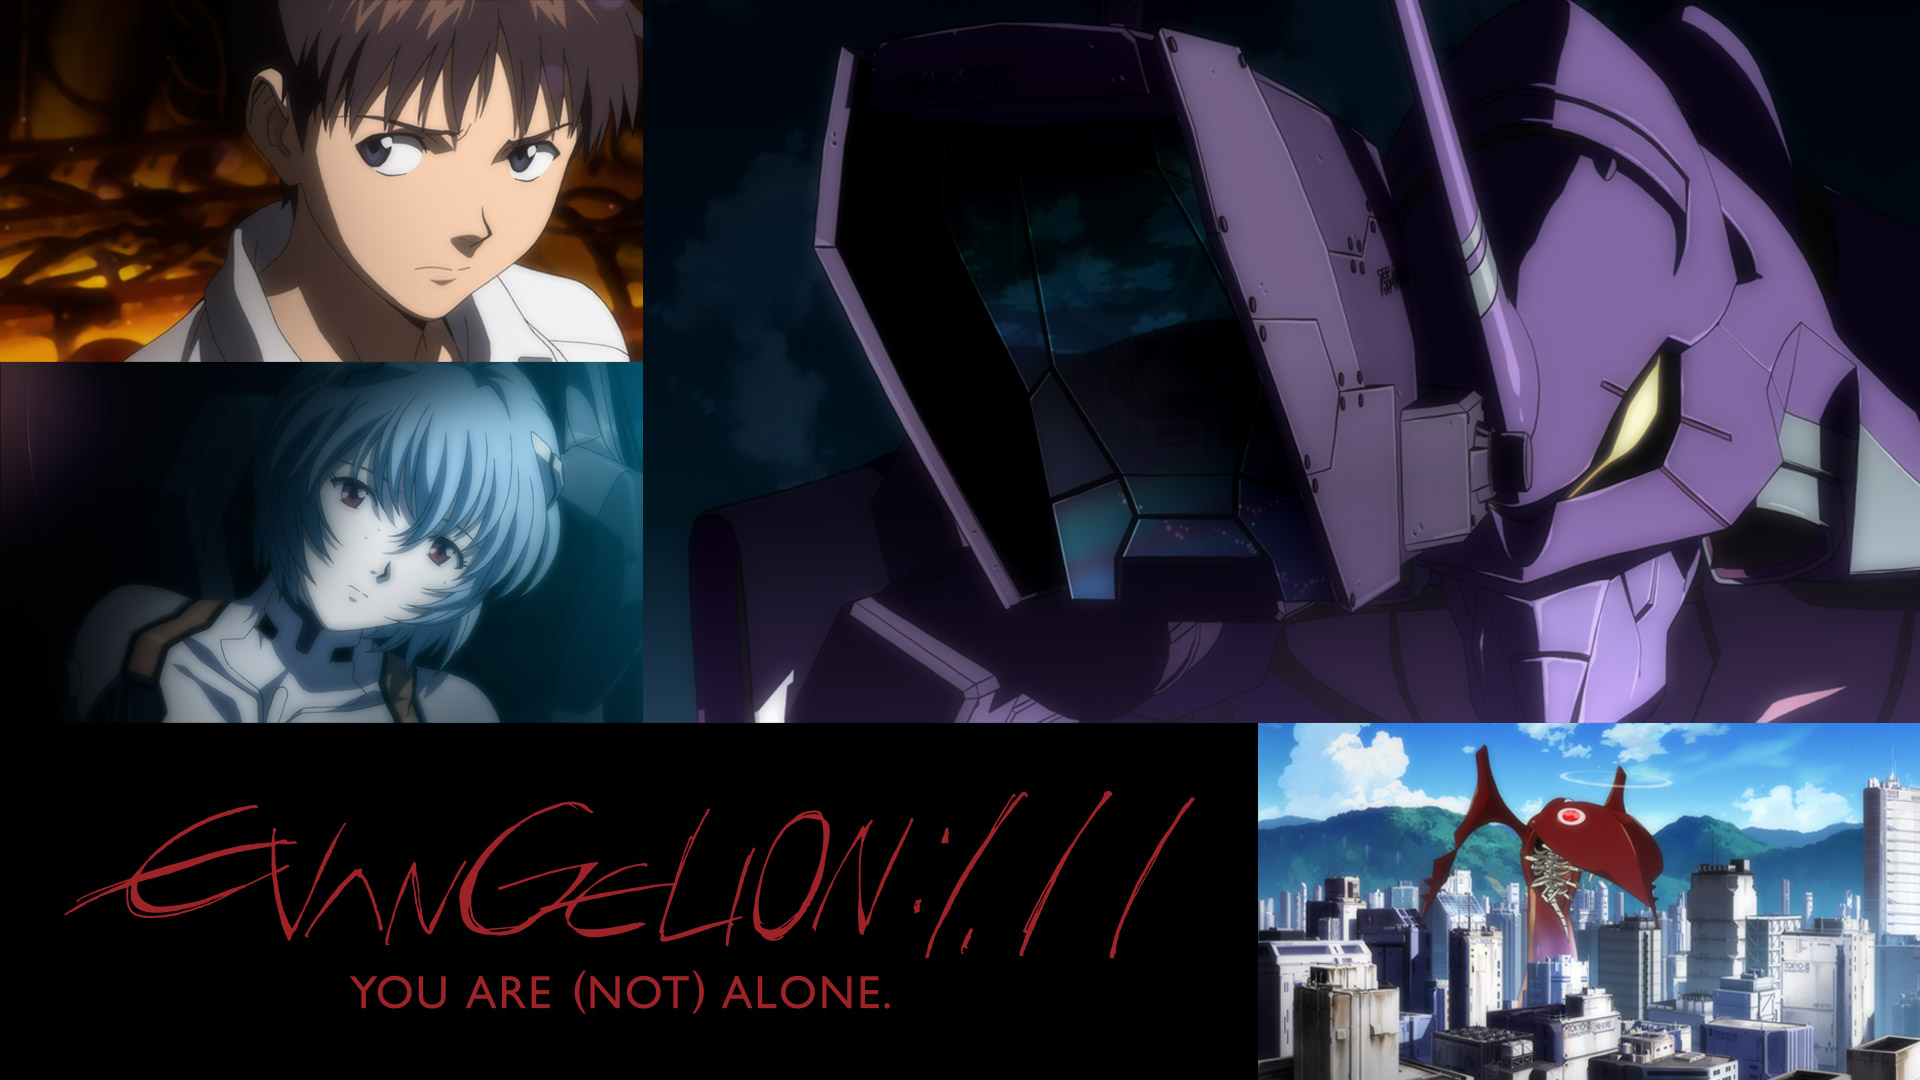 EVANGELION:1.11 YOU ARE (NOT) ALONE.